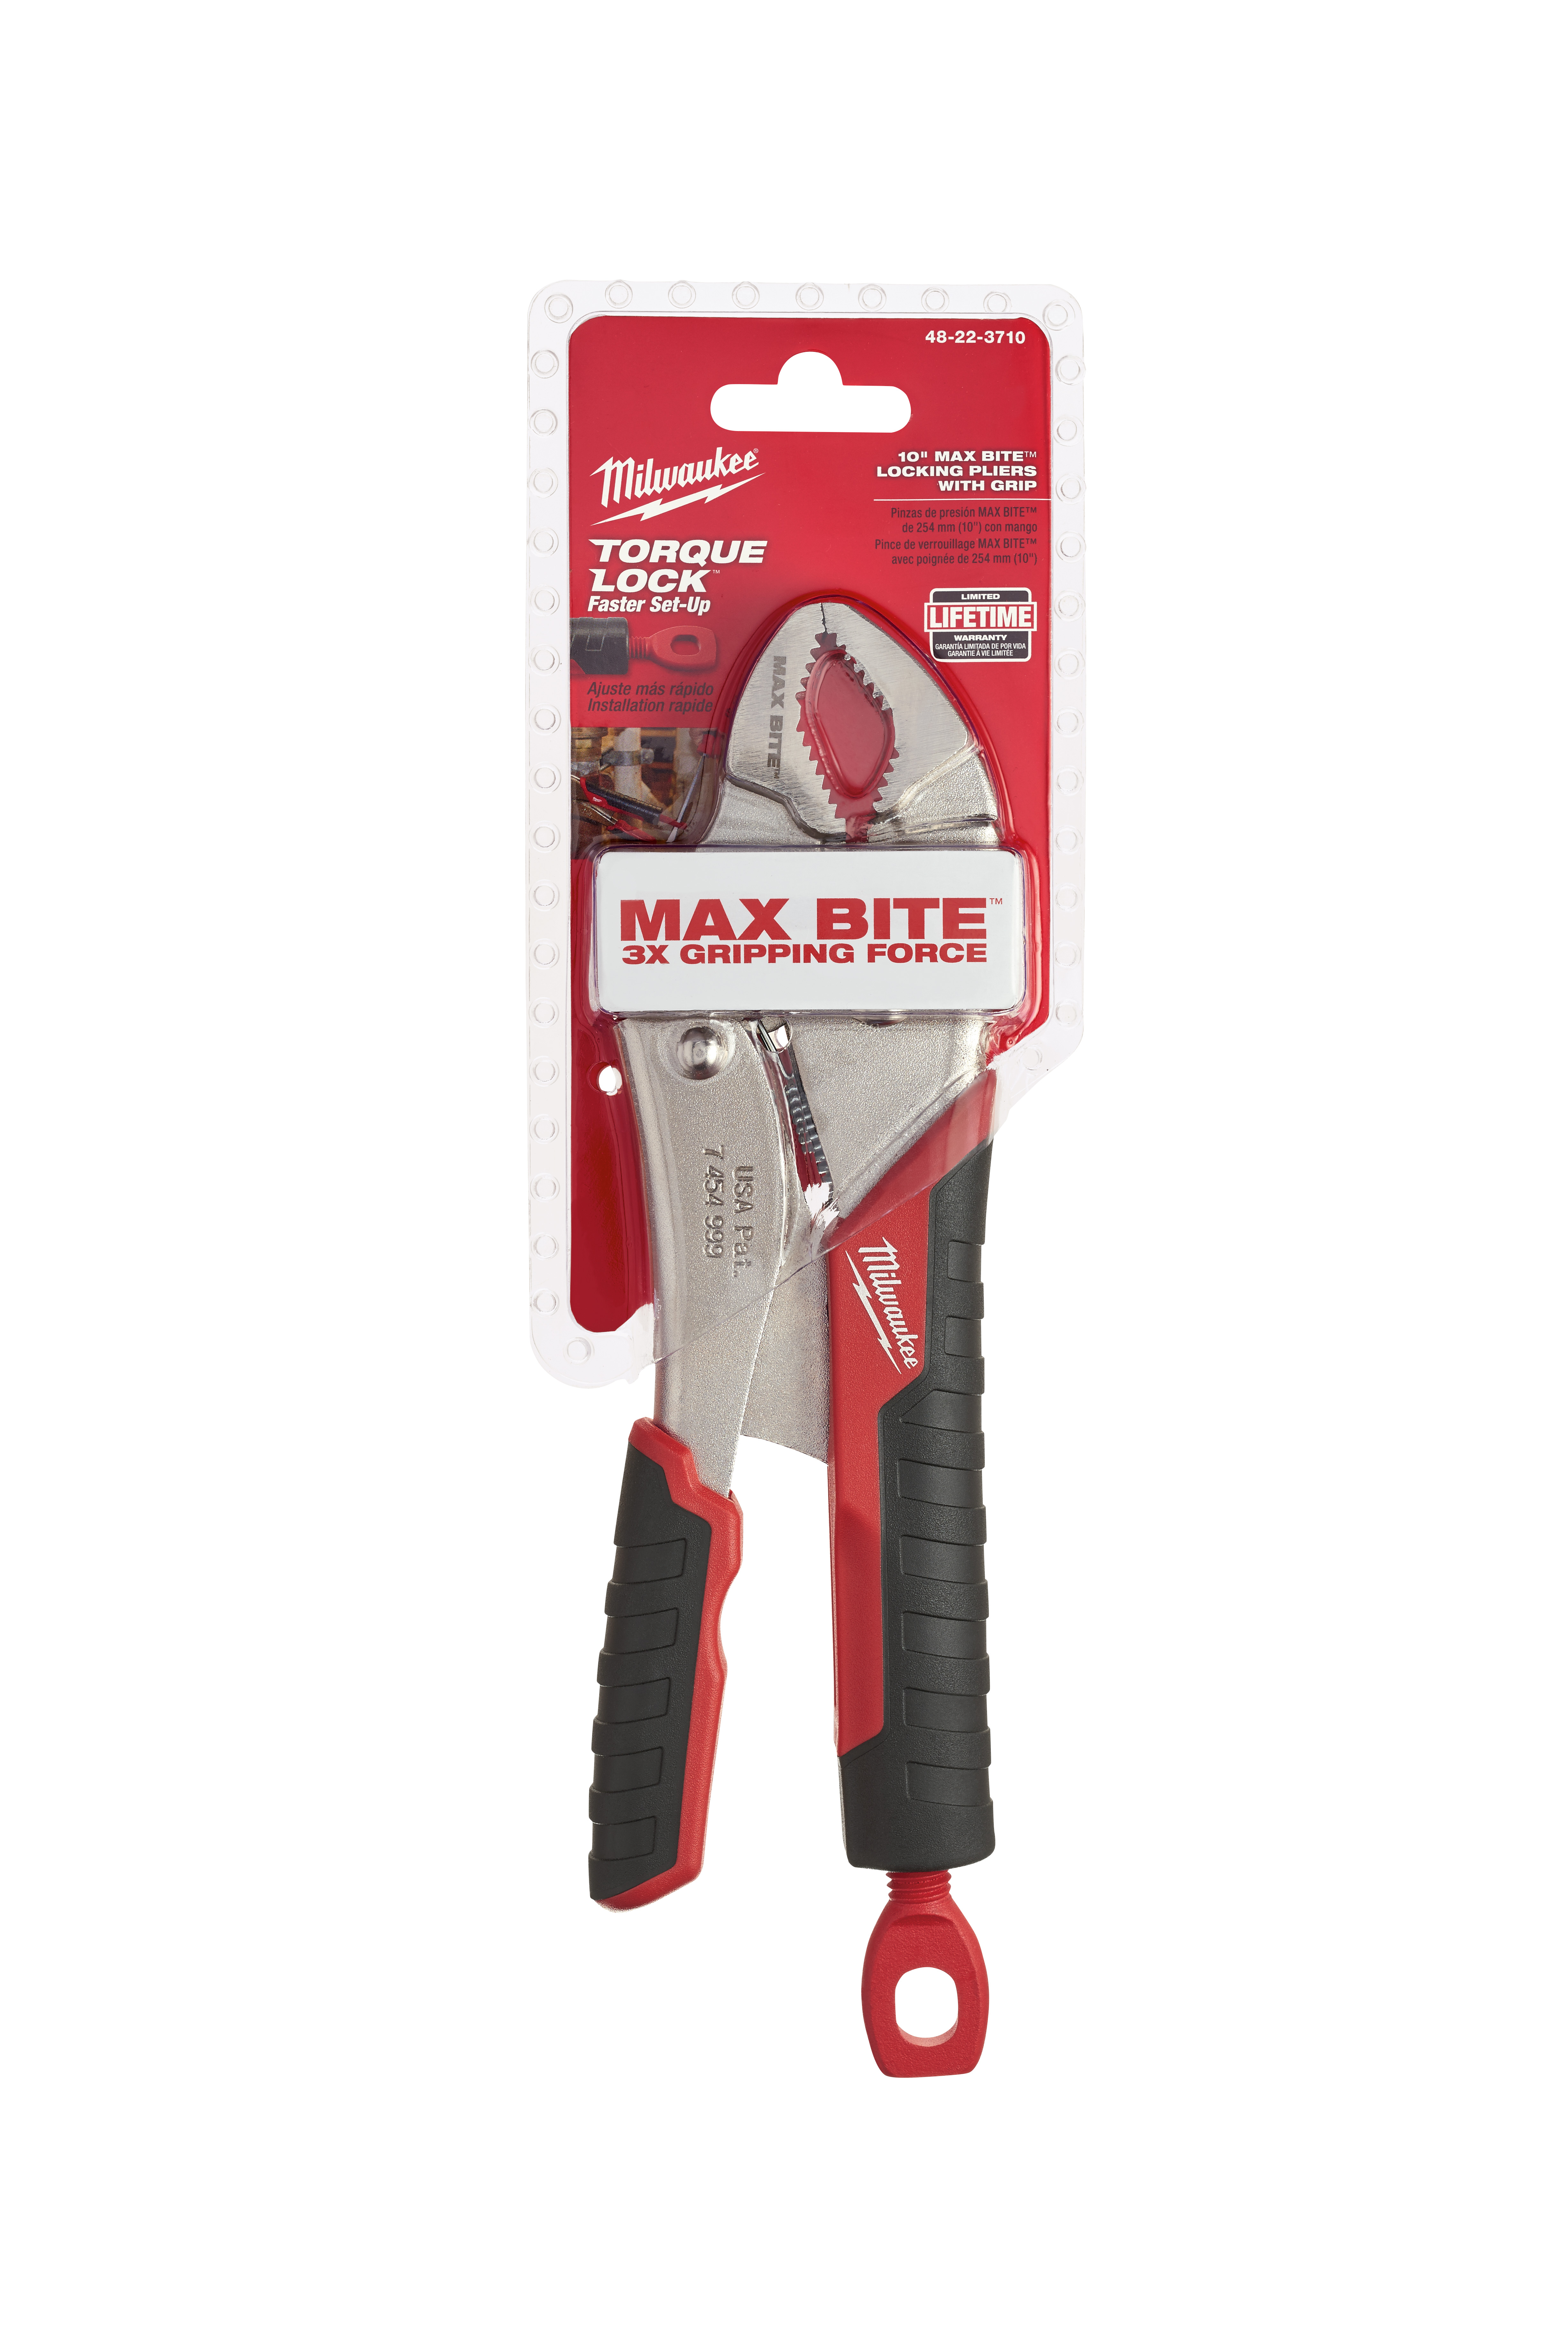 Milwaukee® TORQUE LOCK™ MAXBITE™ 48-22-3710 Locking Plier, 1-7/8 in Nominal, 1-13/64 in L x 19/32 in W Forged Alloy Steel Gripped Curved Jaw, 10 in OAL